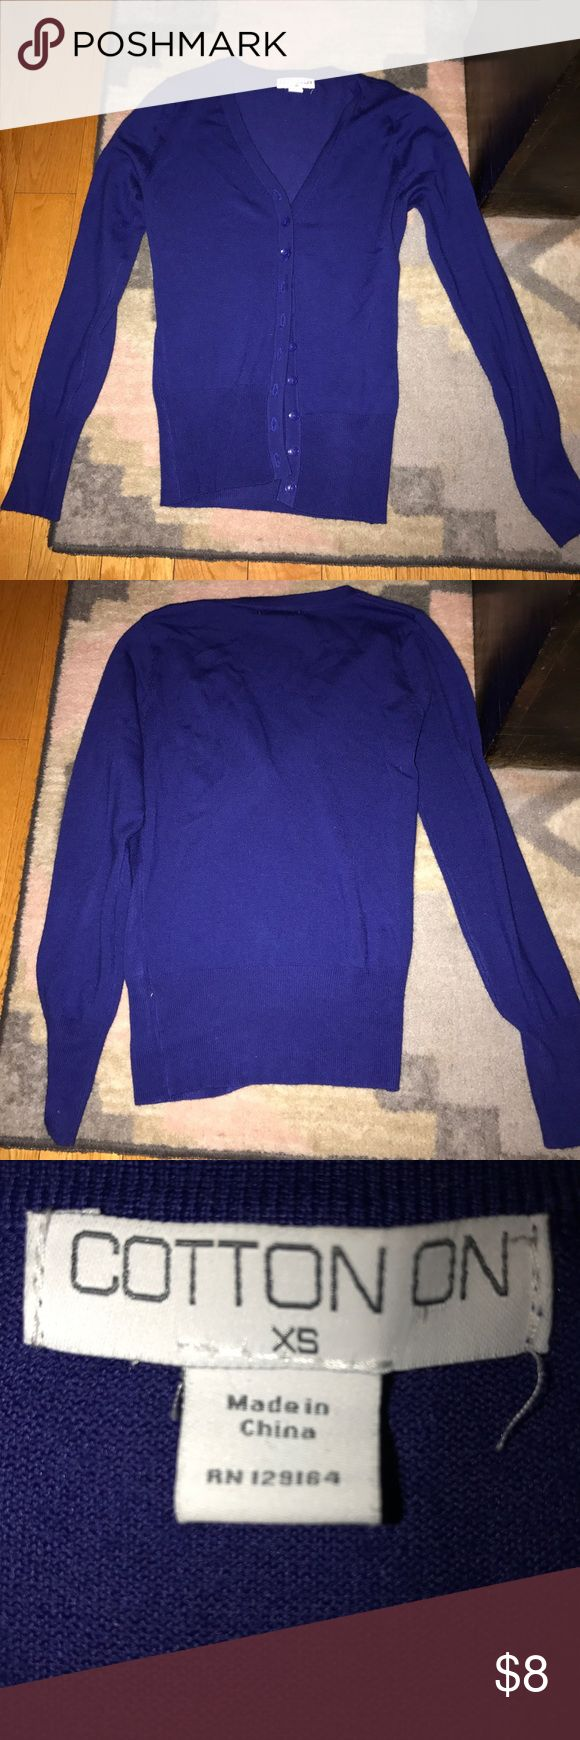 Practically New Royal Blue Cardigan Cotton On cardigan worn a few times. Bought to wear with a pair of shoes but never really wore. Some piling but overall still good. Cotton On Sweaters Cardigans